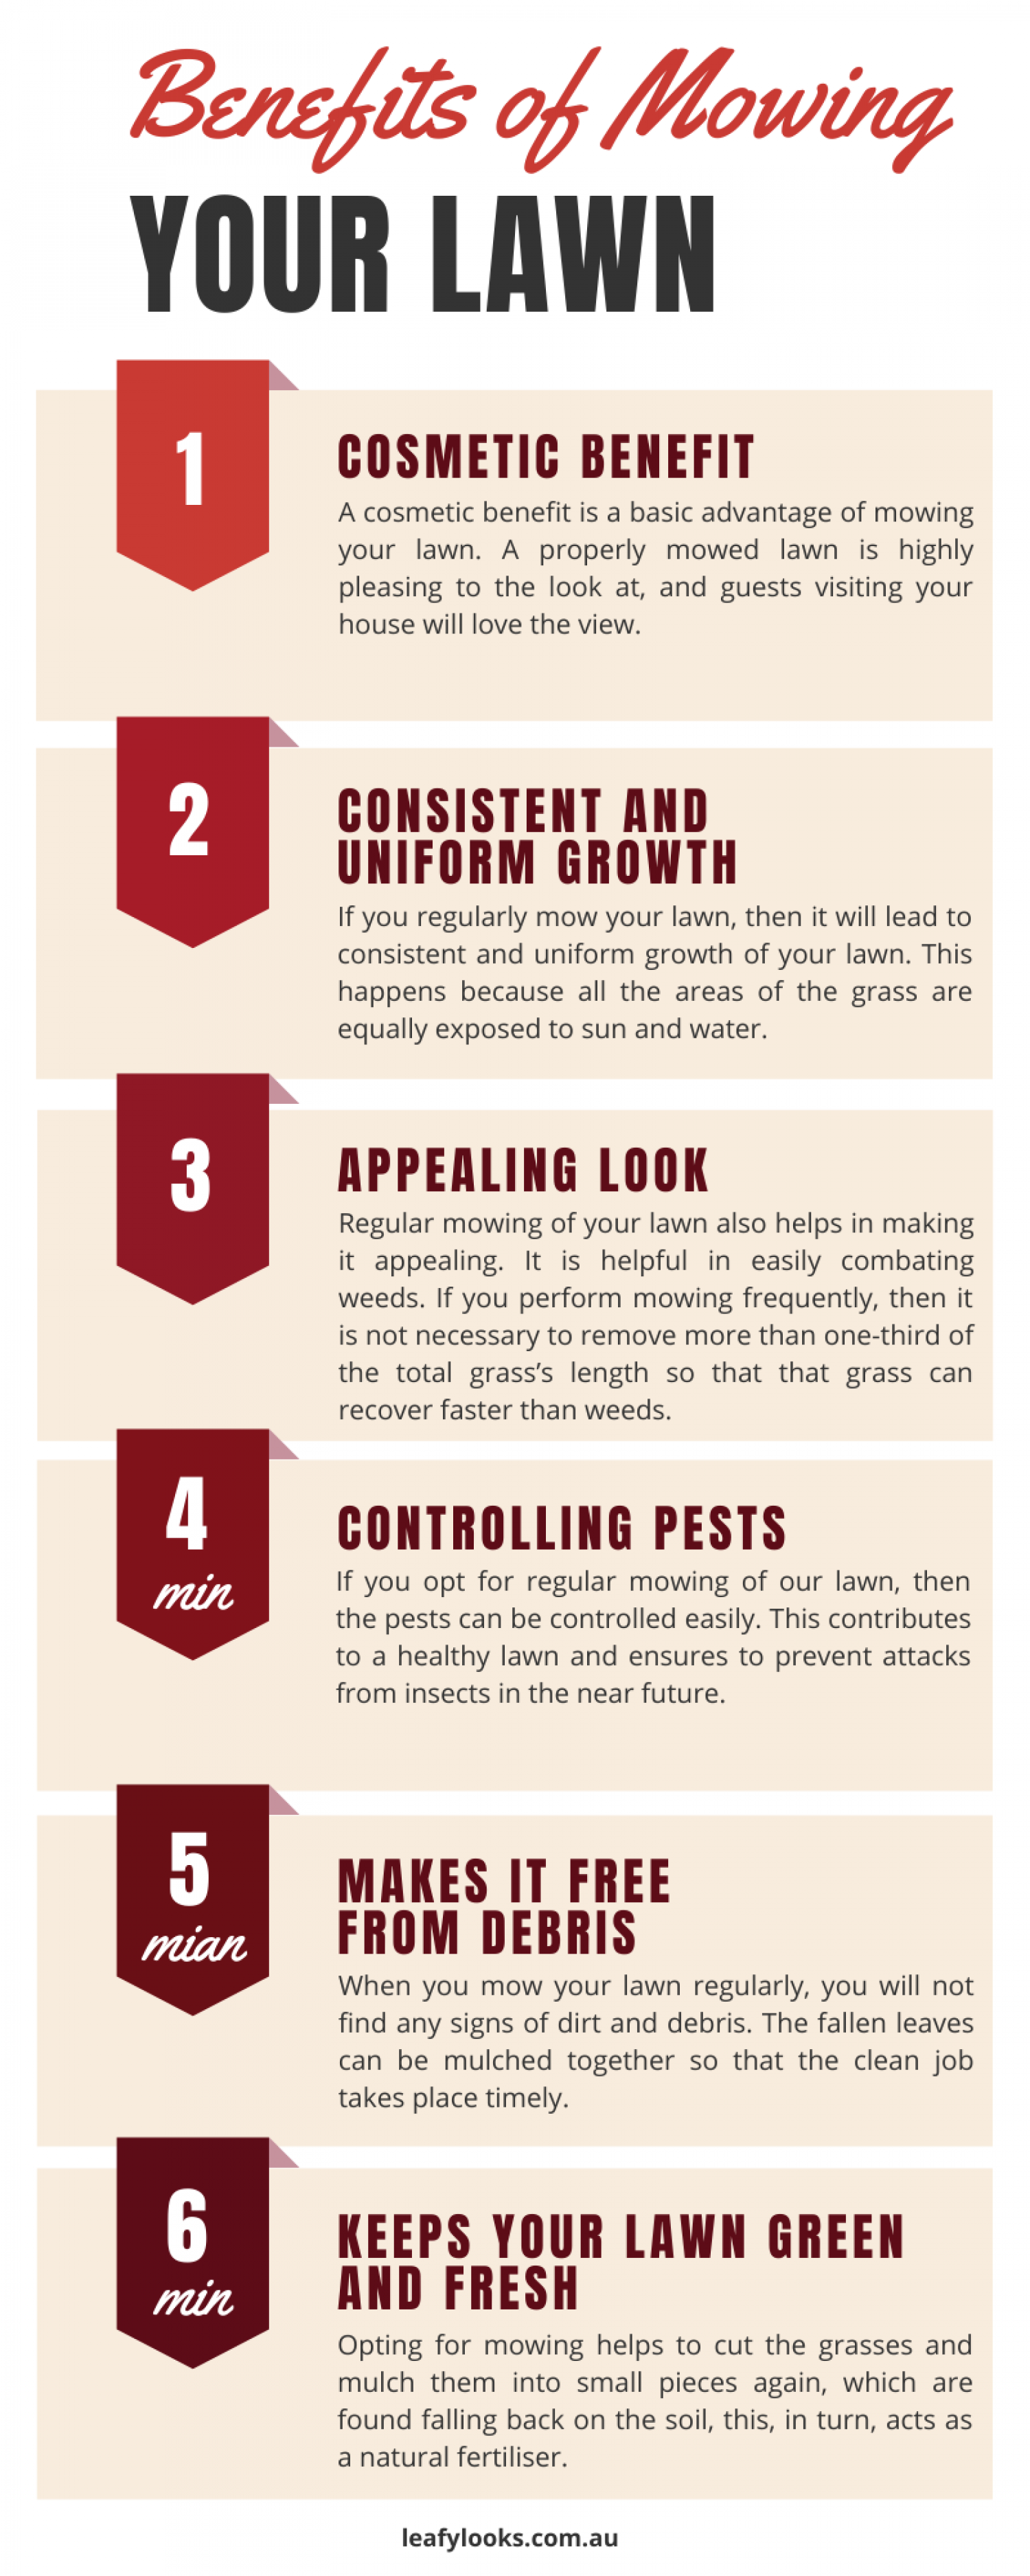 Benefits of Mowing Your Lawn Infographic